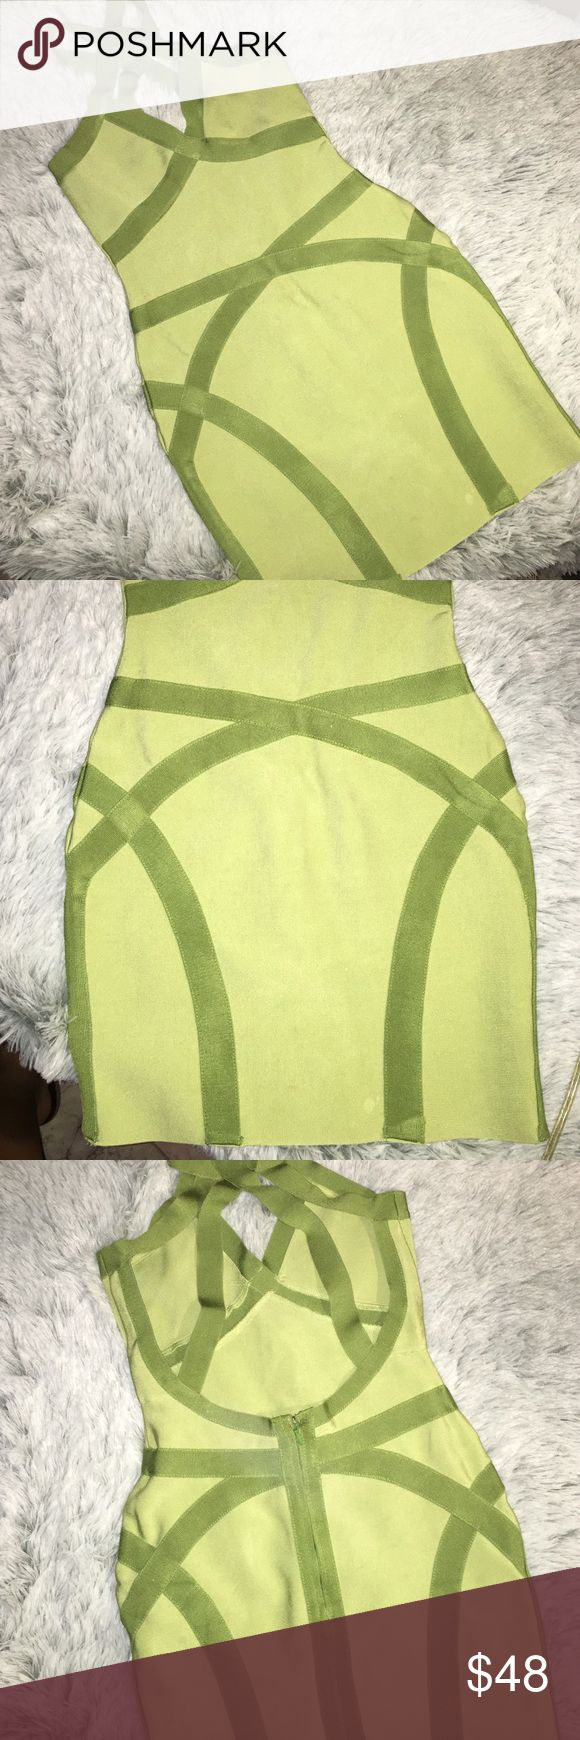 Sexy Bandage Dress Super cute and high end! Purchased at a Nordstrom Sample sale without tags! Worn once and fits amazing Dresses Mini